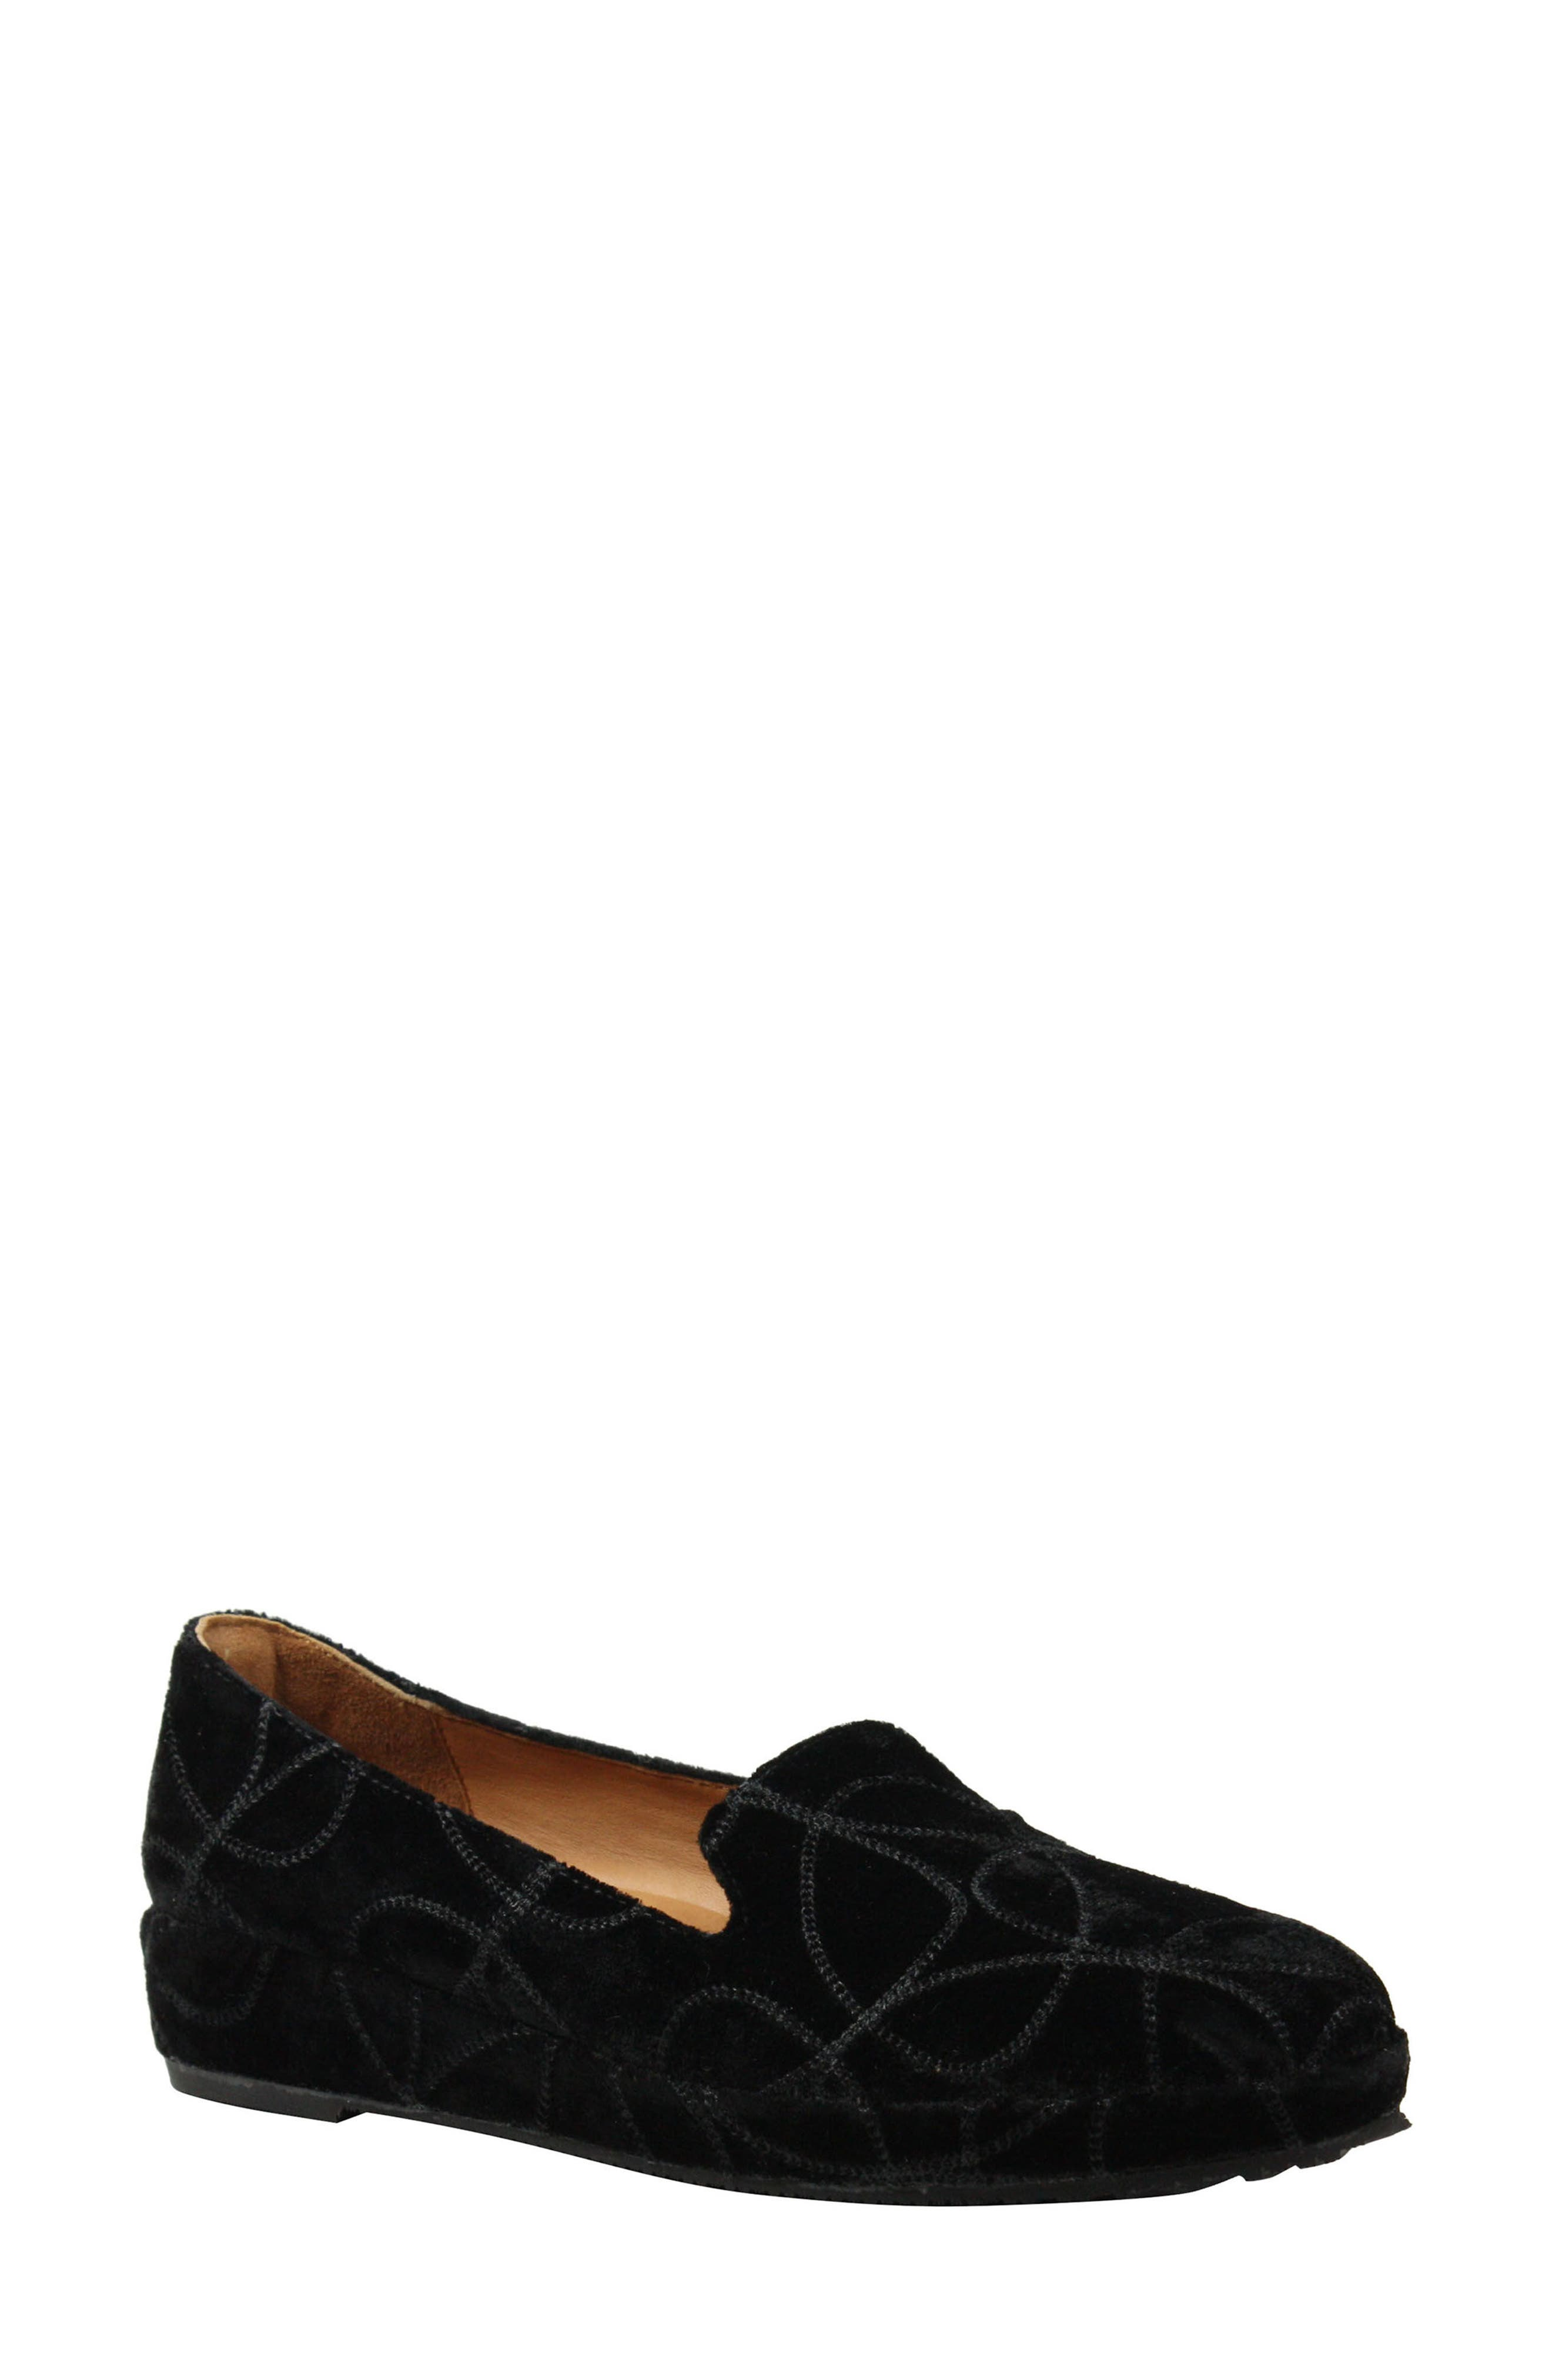 L'Amour des Pieds Women's Carsoli Wedge Loafer 35eknL